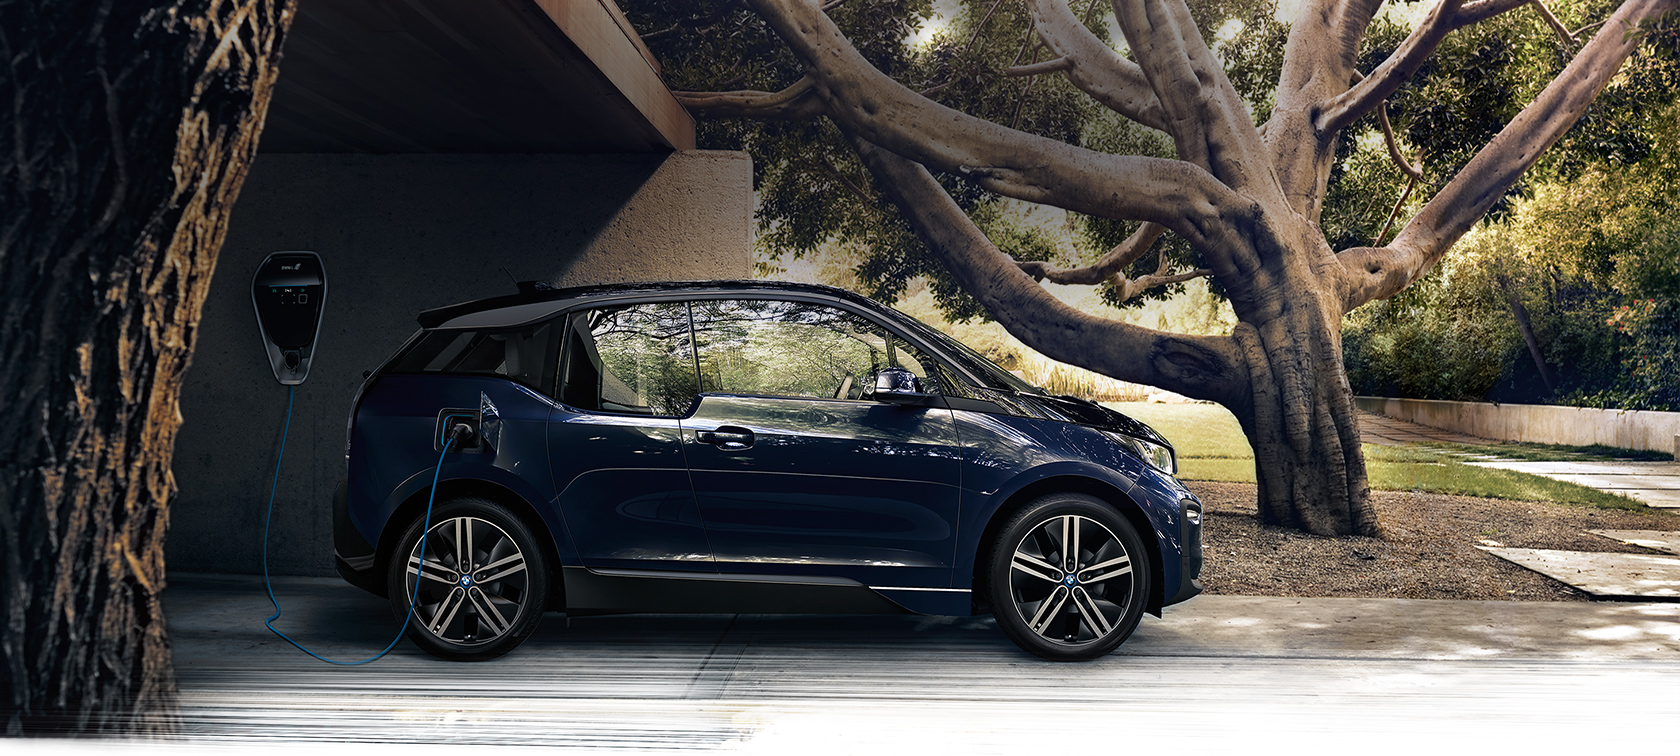 BMW i-series i3 dark blue: side view